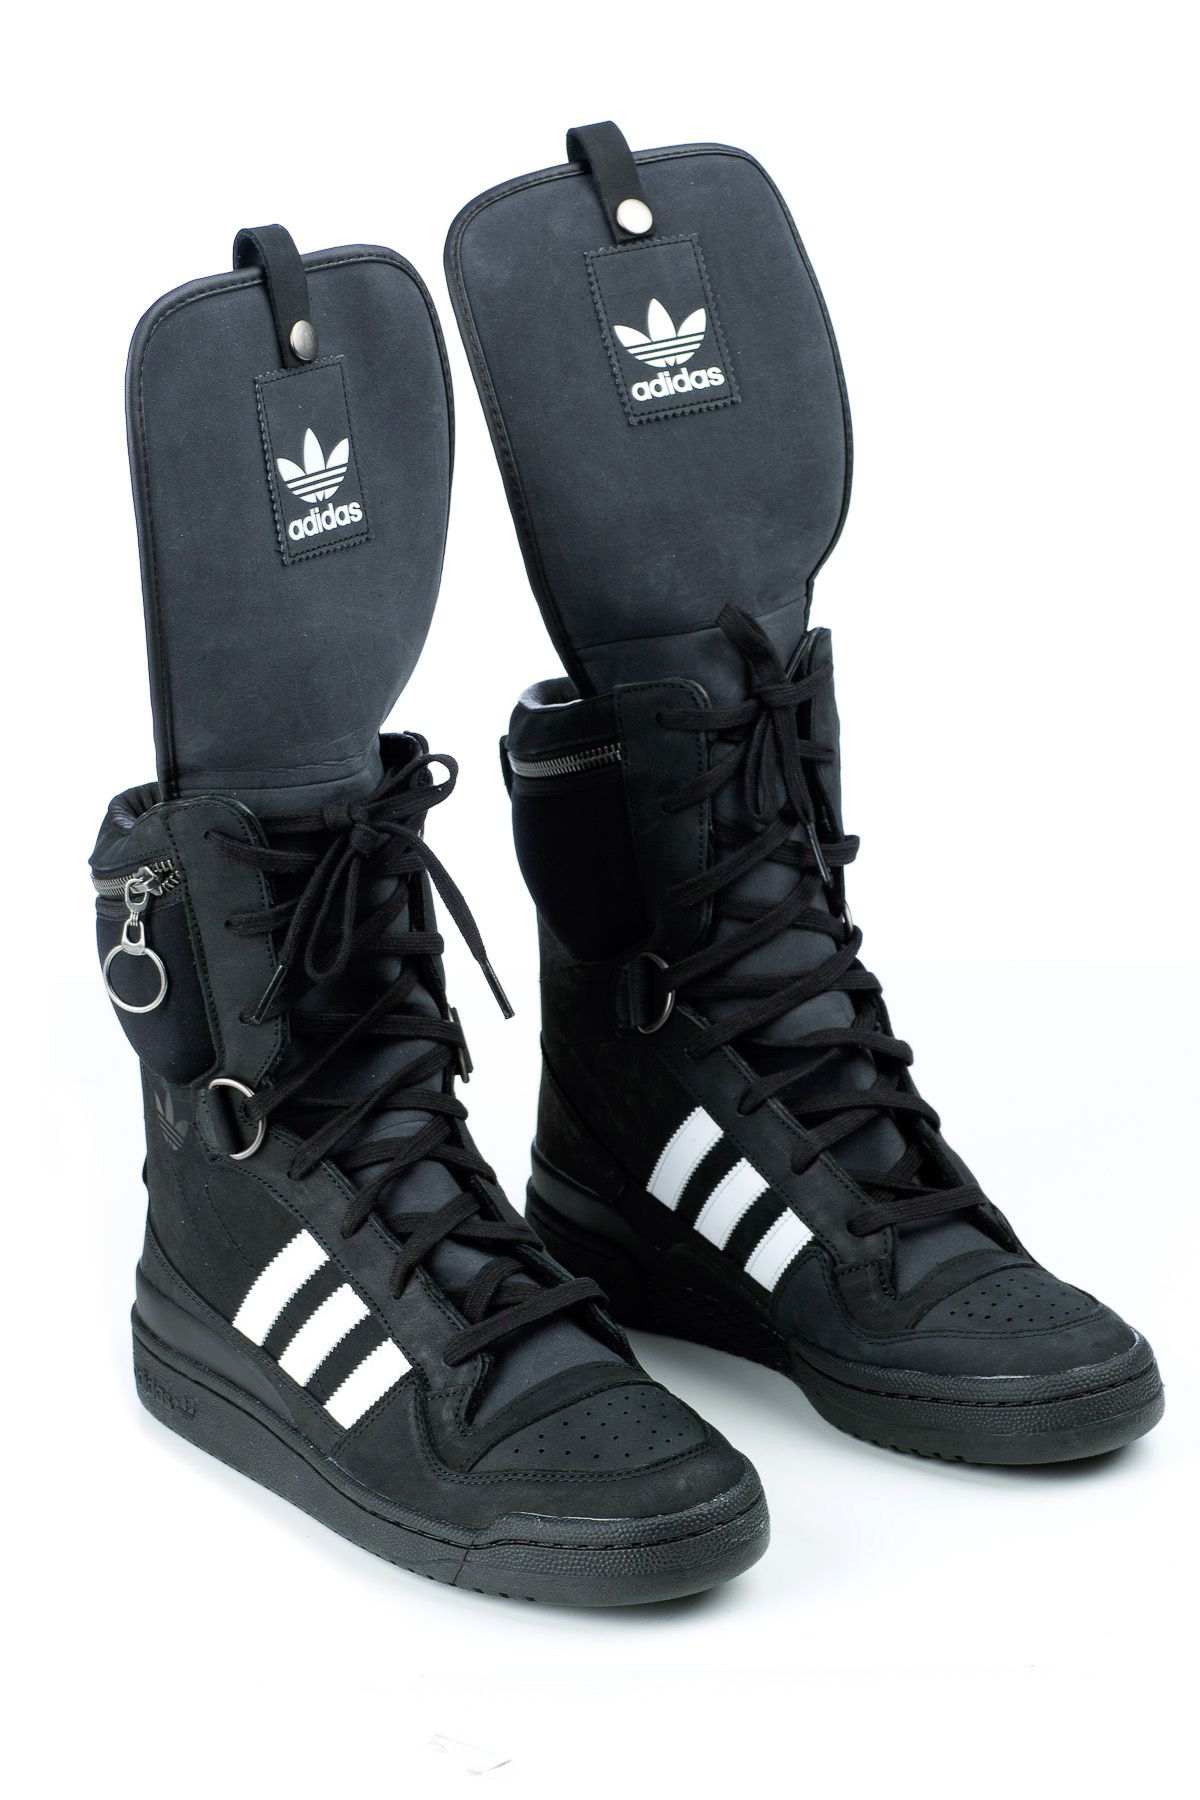 reputable site 490d0 b3ea8 Crazy Fashion Shoes - Most Extreme Shoe Styles.  Adidas  Originals  TallBoy  by  JeremyScott